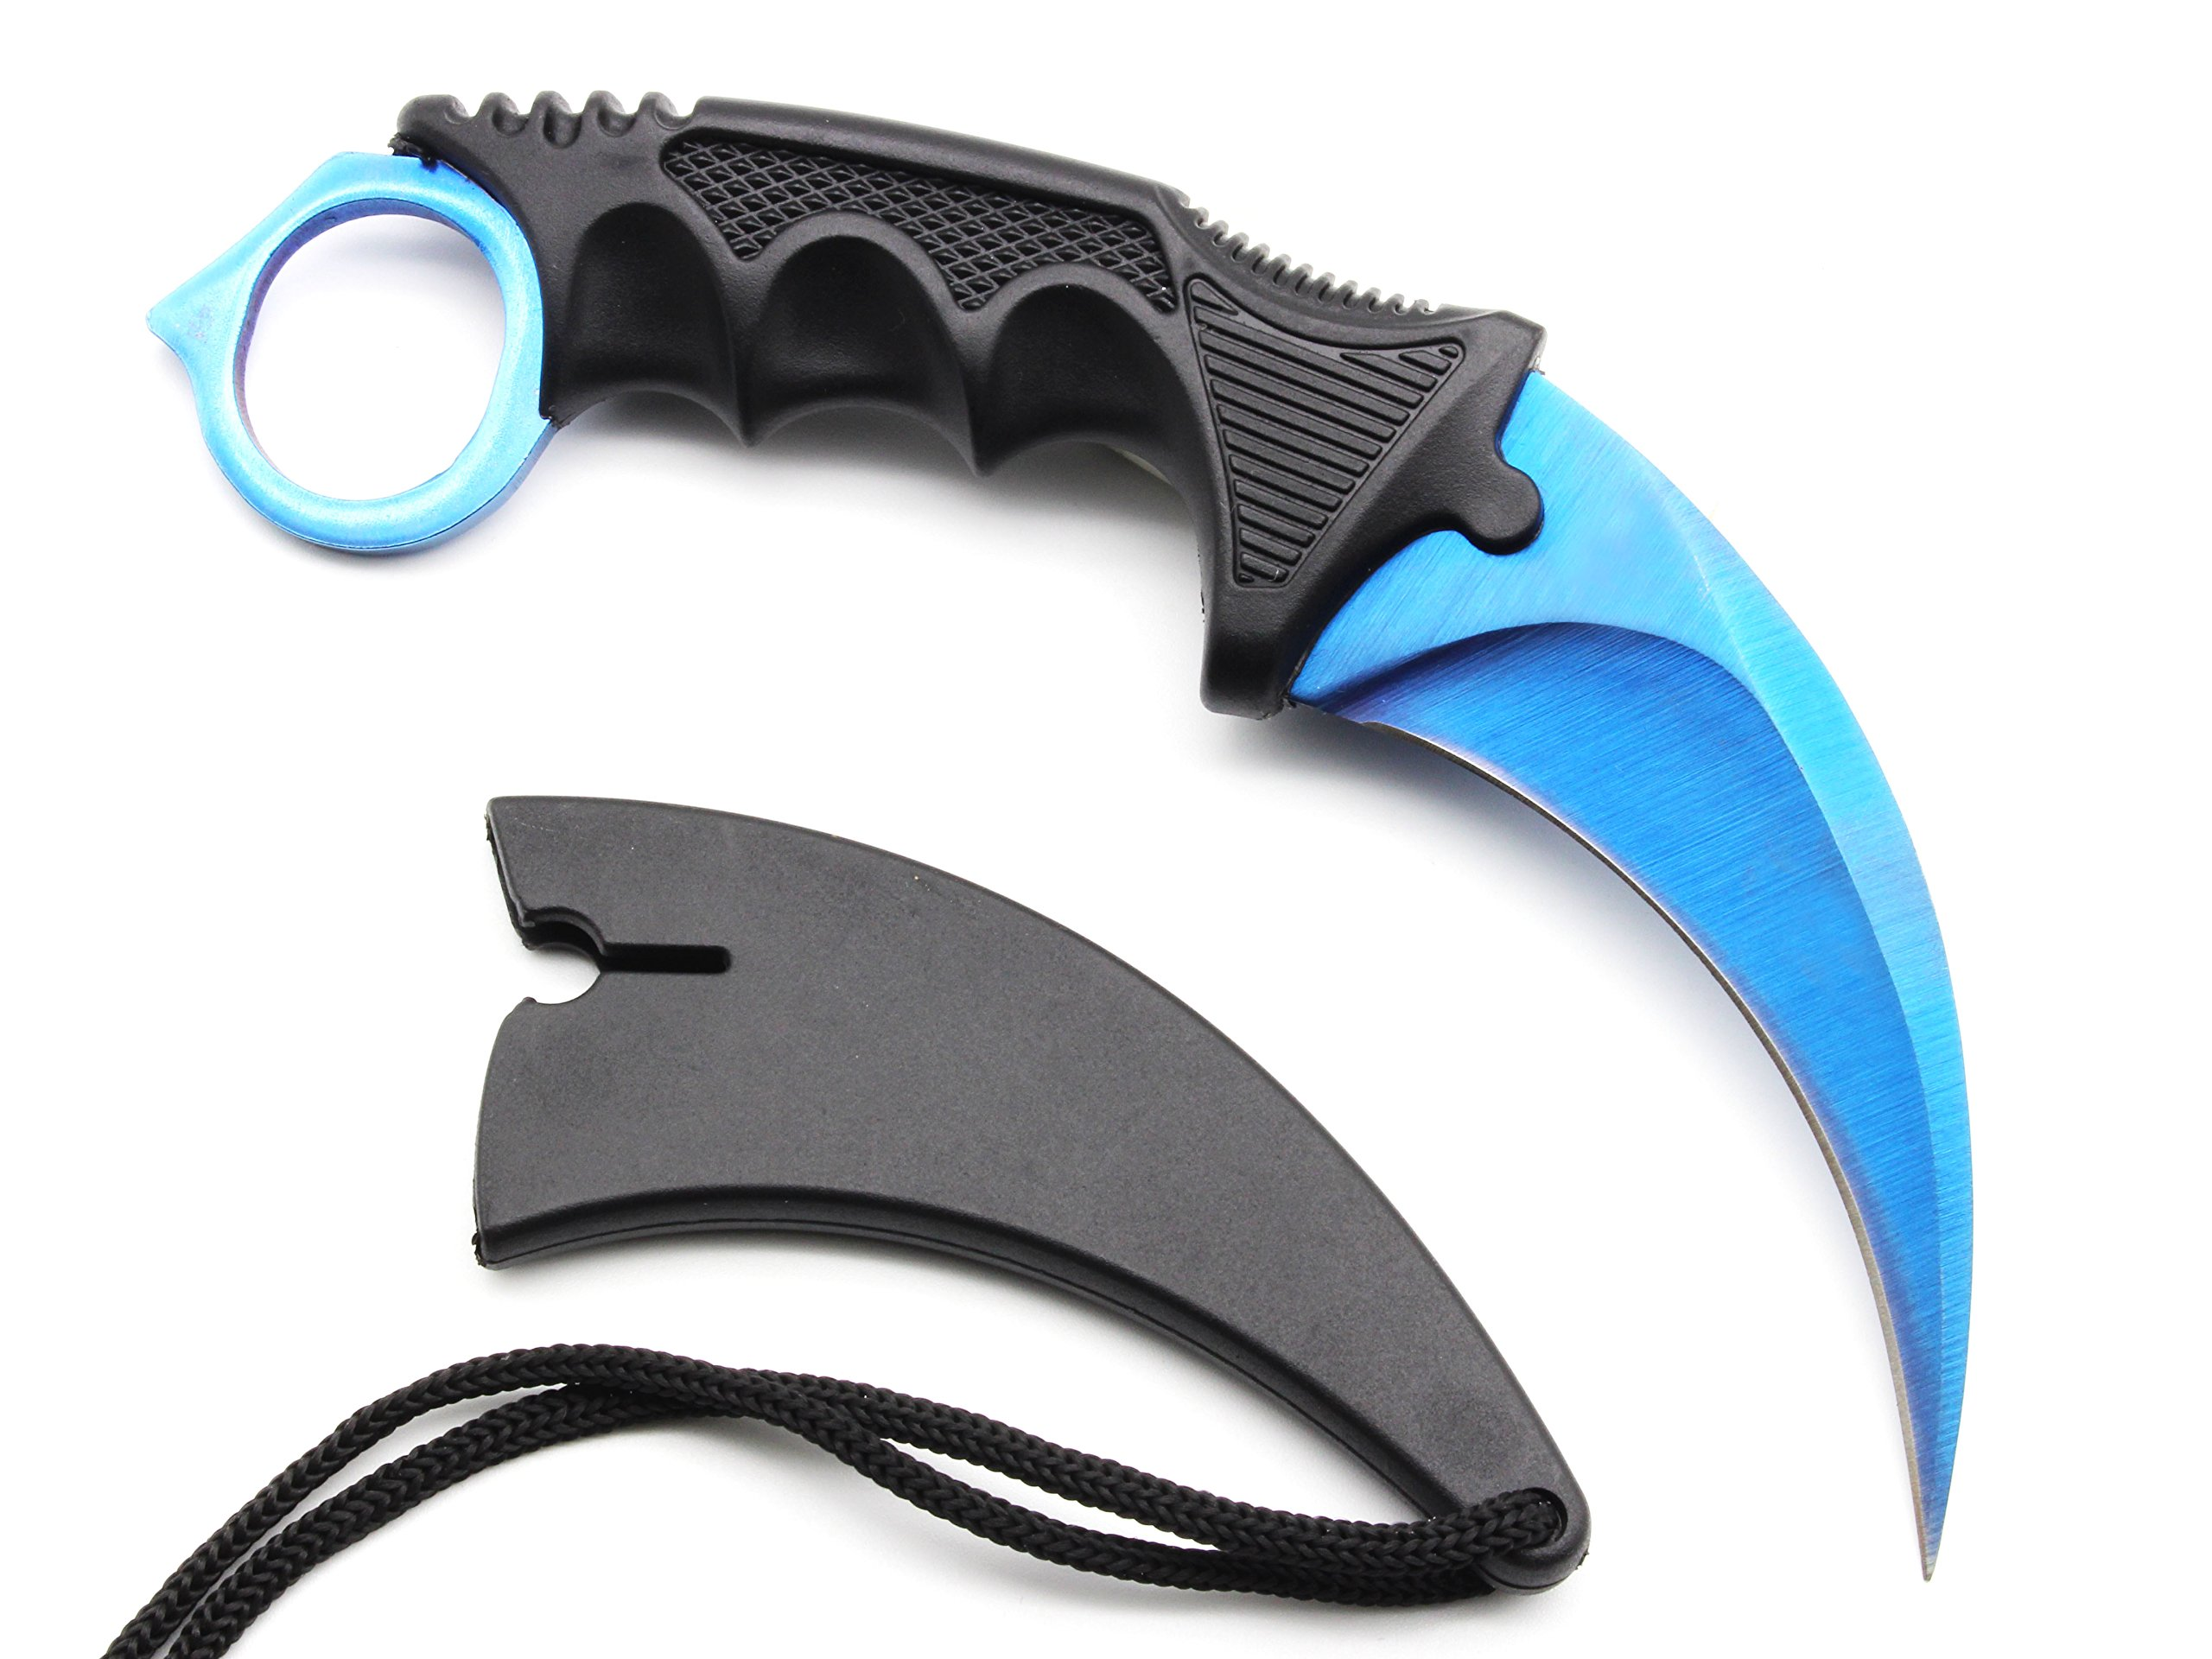 HOSANA Karambit Knife Stainless Steel Fixed Blade Tactical Knife with Sheath and Cord Nice Knife for Hunting Camping Fishing and Field Survival (Blue)